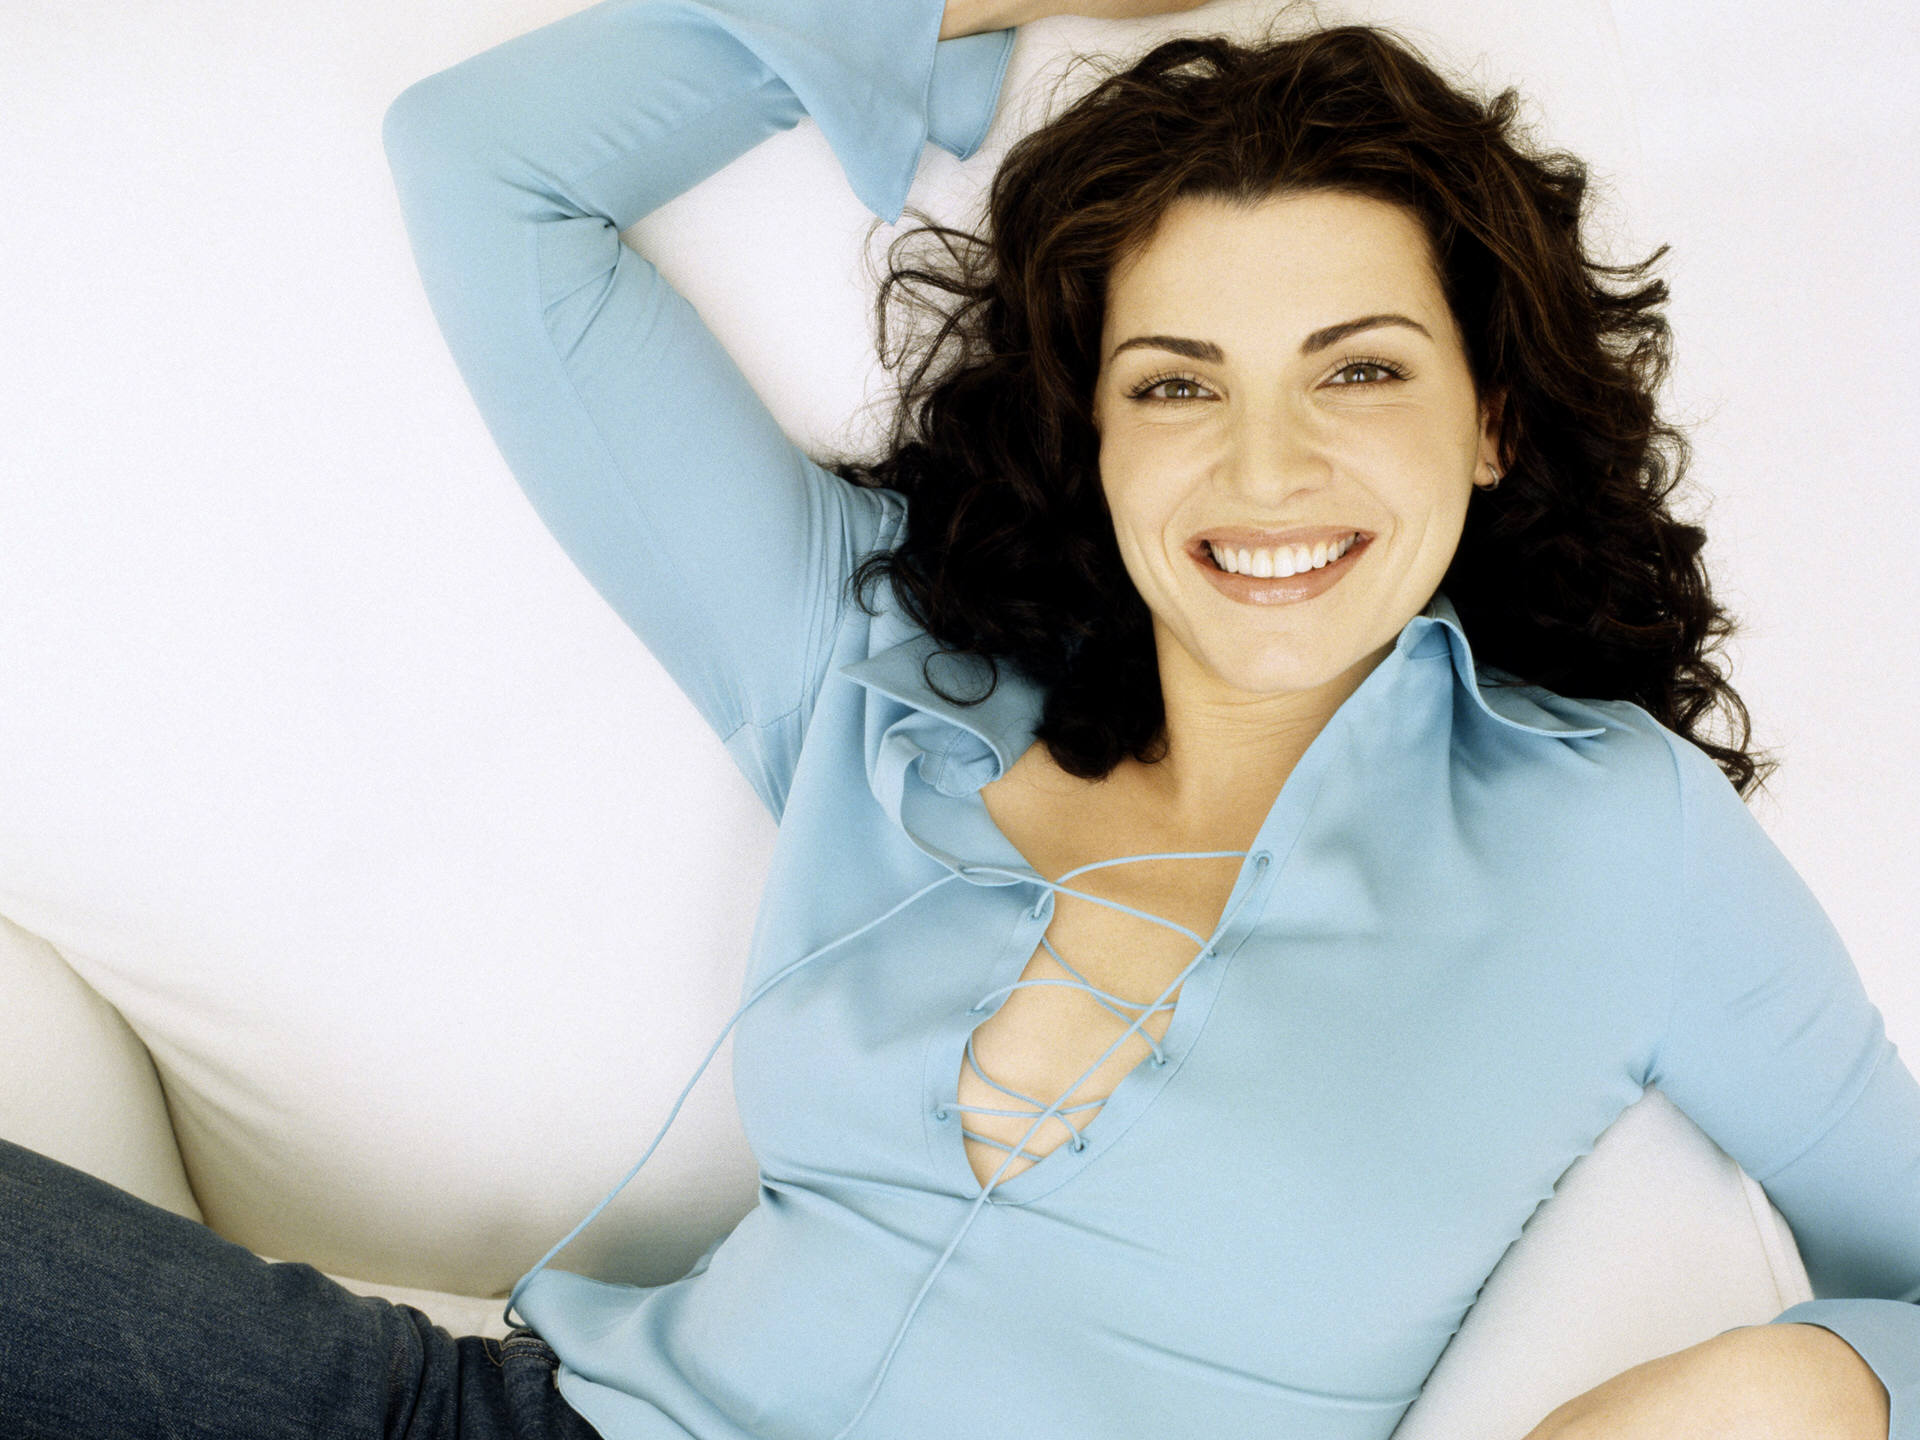 Julianna Margulies - Gallery Photo Colection